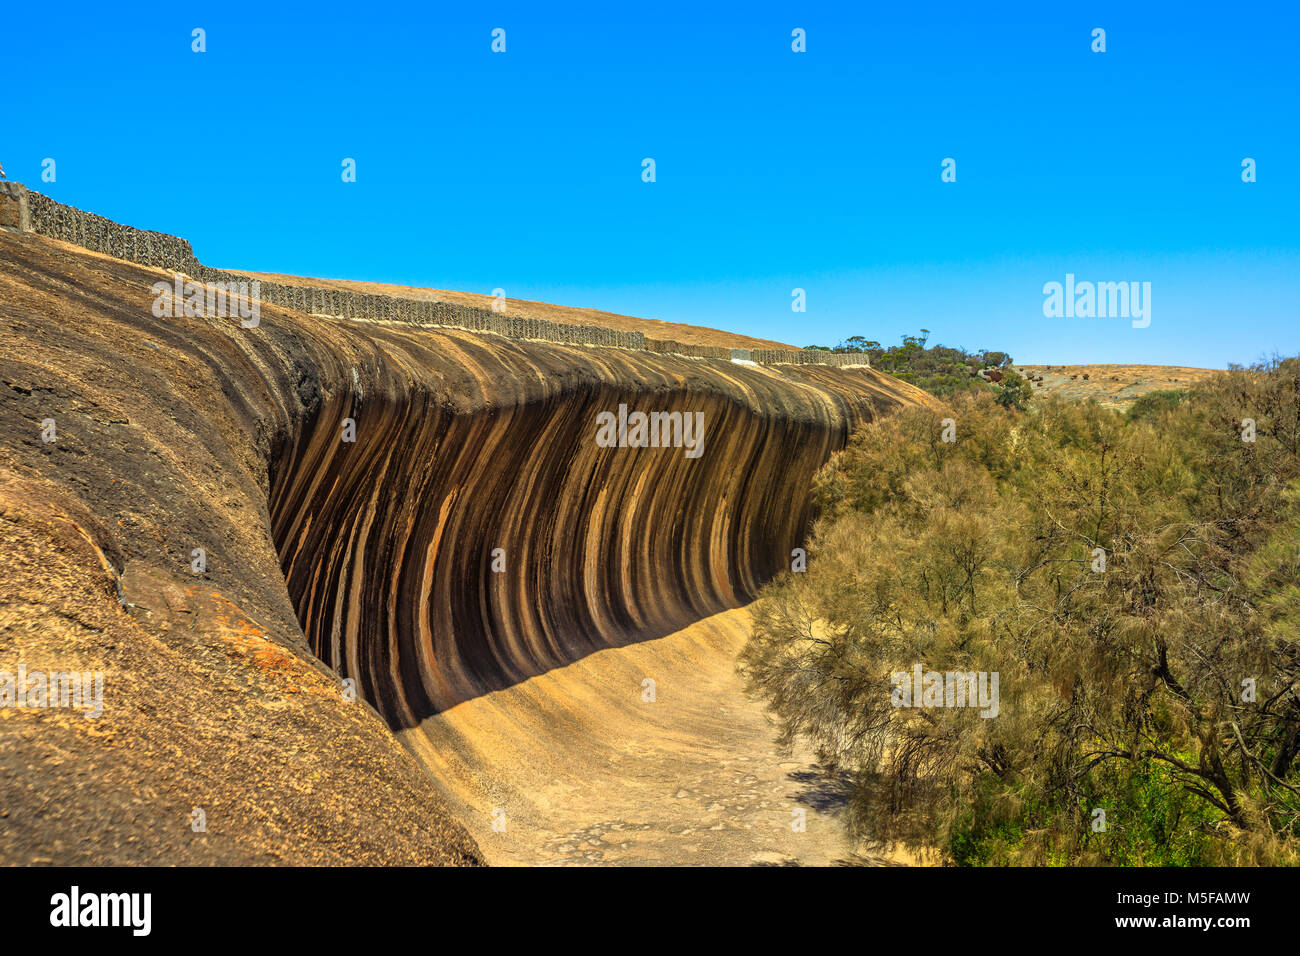 Aerial view from top of Wave Rock, Hyden, Western Australia. The natural rock formation is shaped like a tall ocean - Stock Image